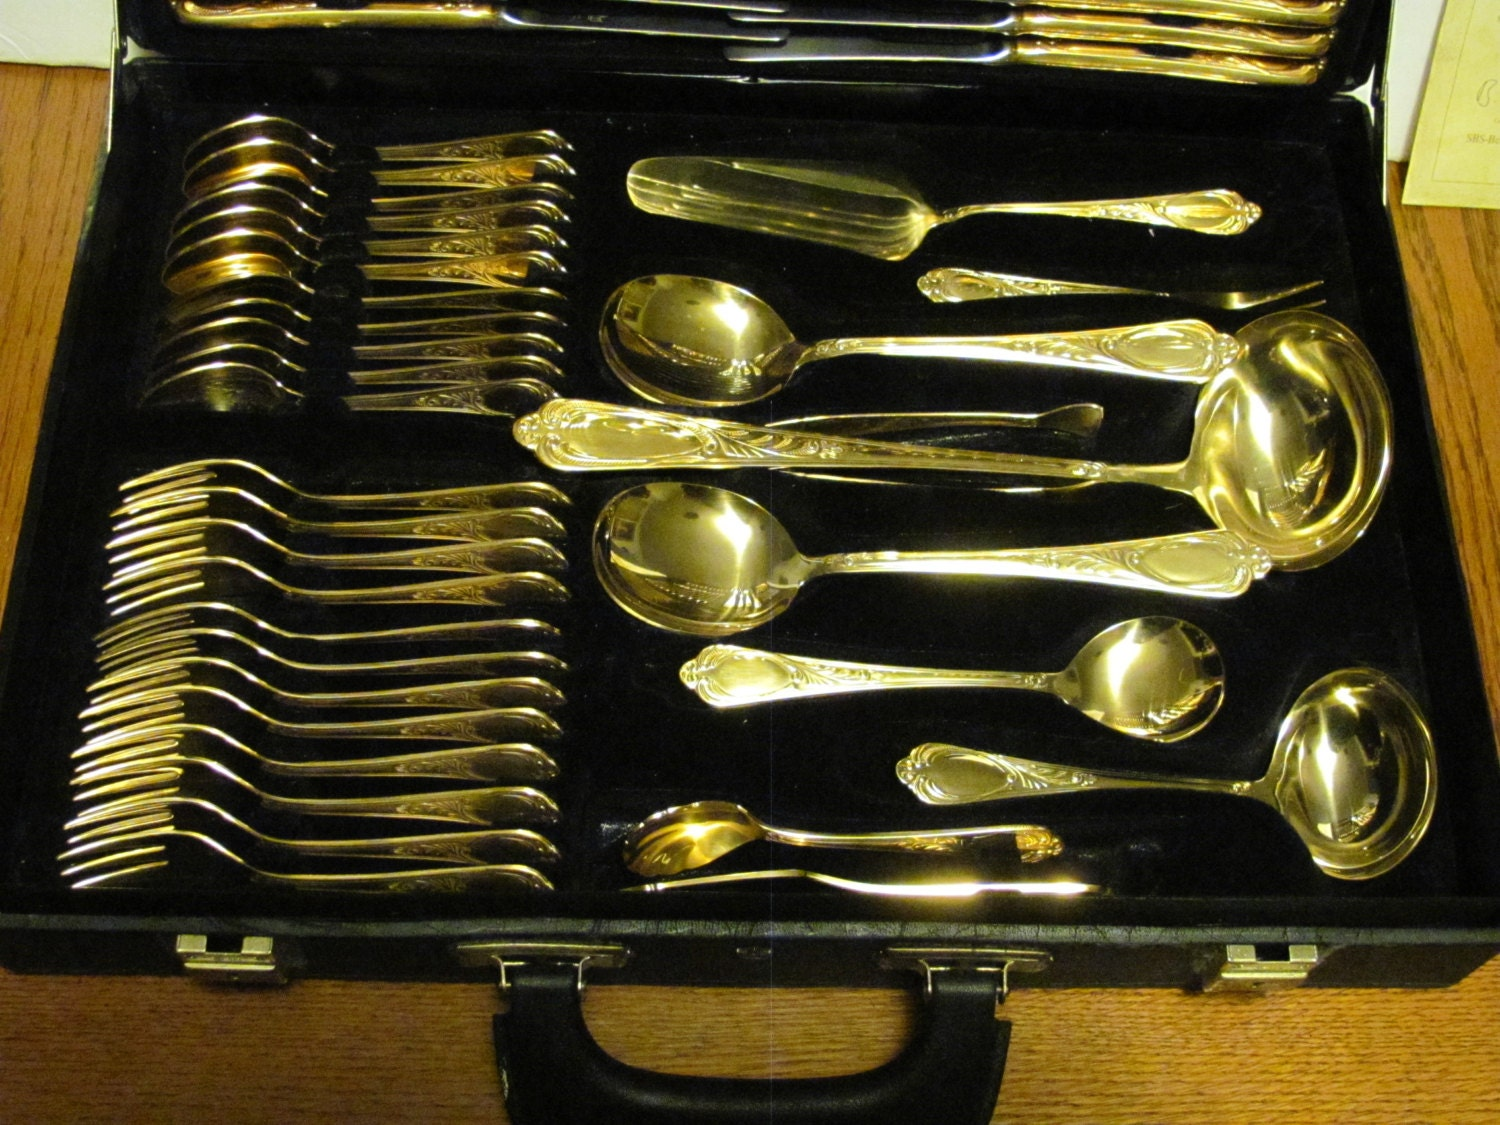 Bestecke Solingen Sbs W Germany Wien 70 Pc Gold Flatware Set